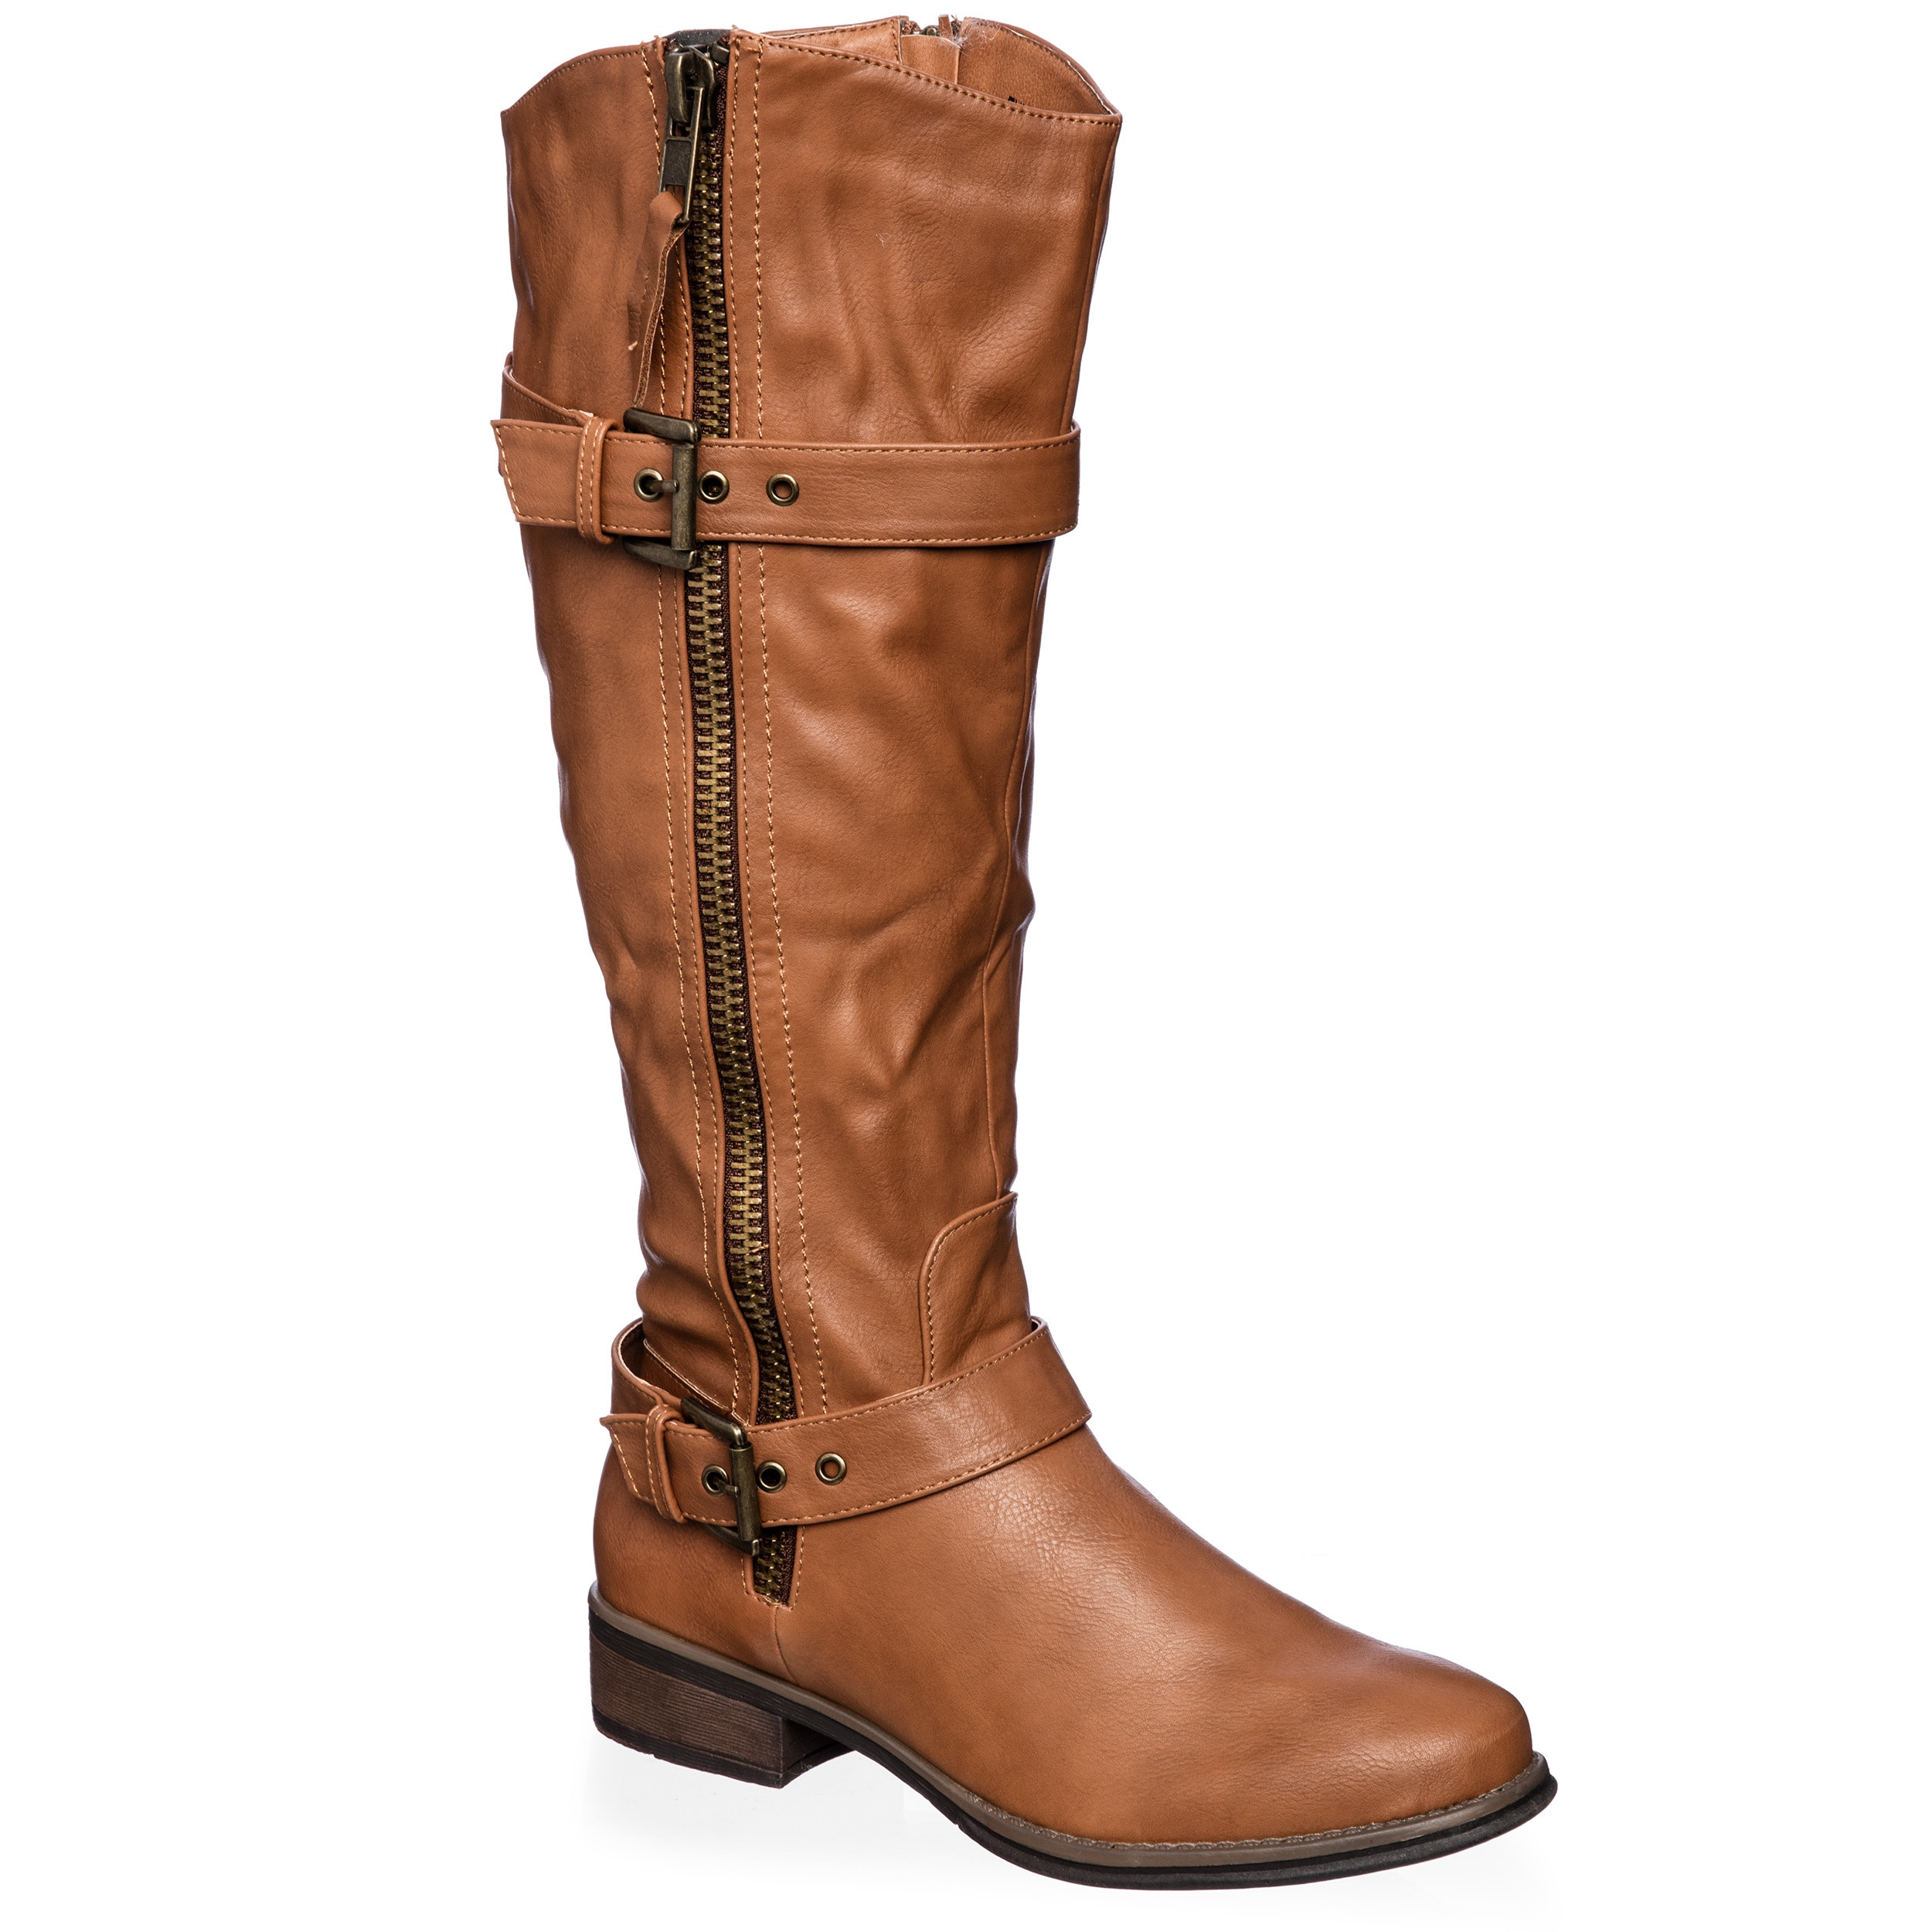 Anna Clogs Women's Riding Knee High Boots Size 8.5 in Bro...